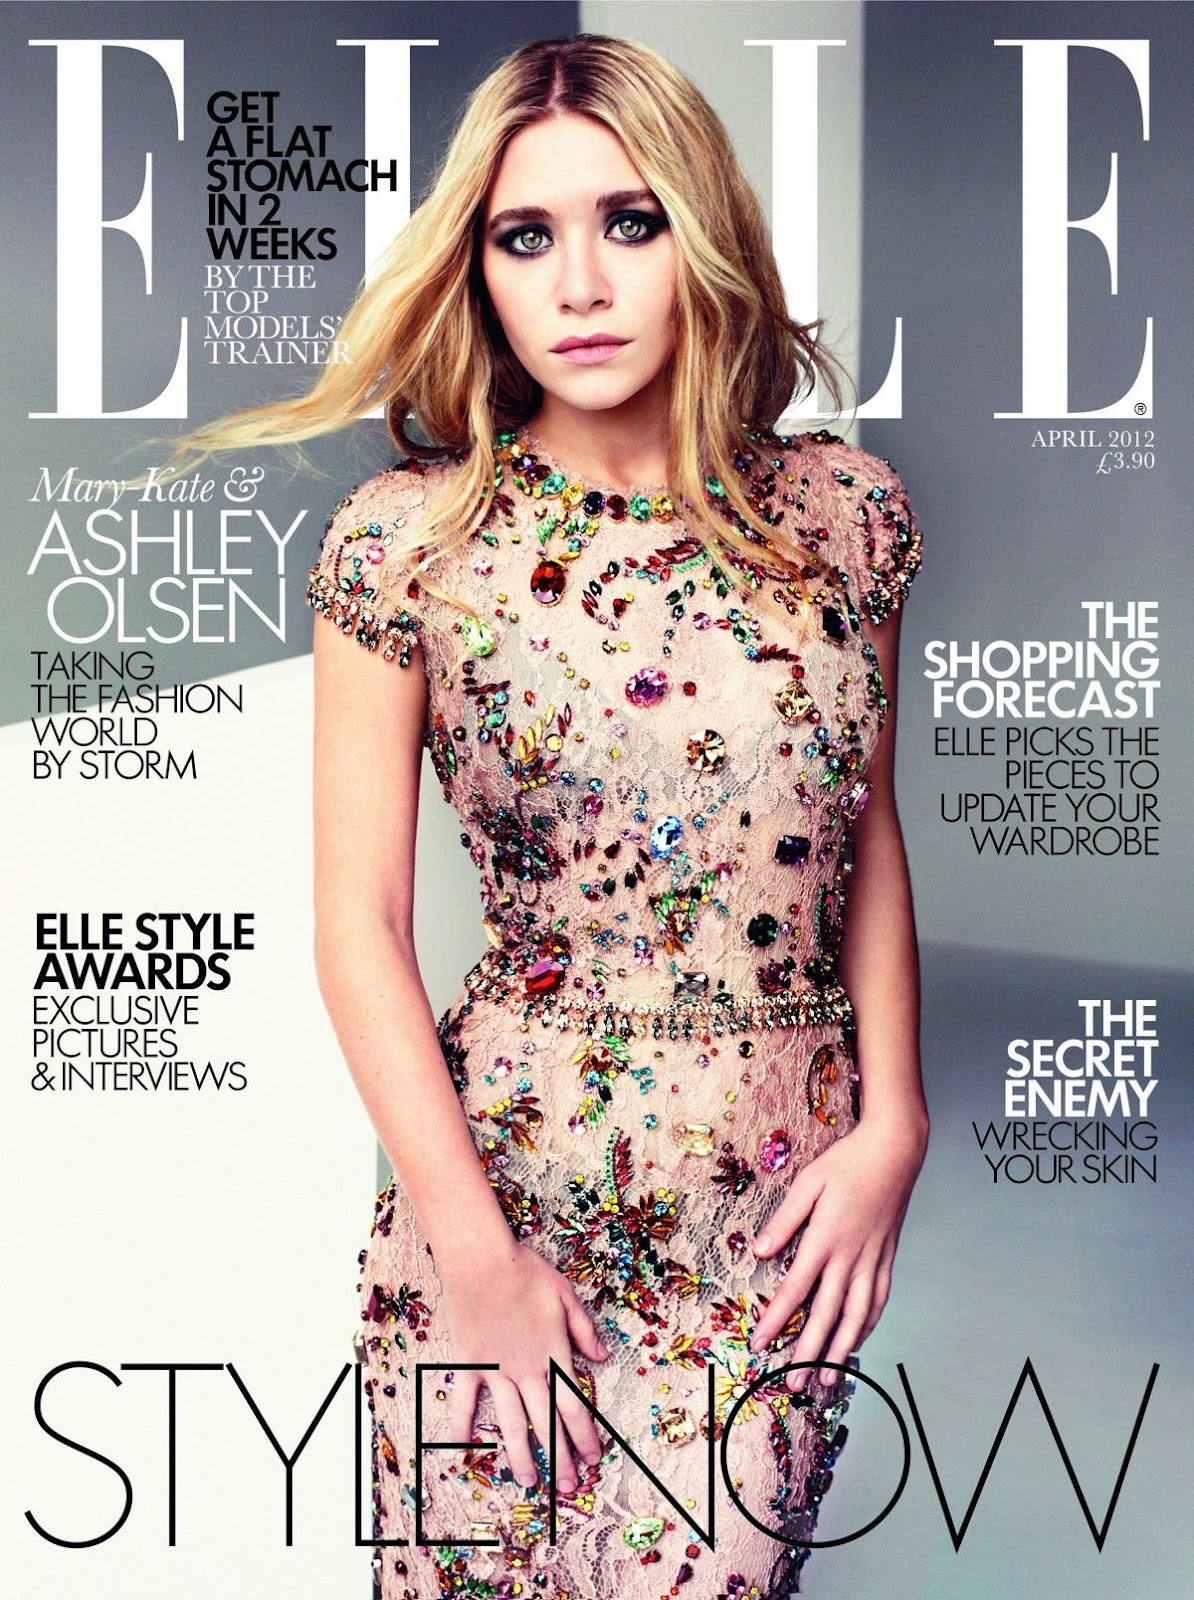 http://4.bp.blogspot.com/-Y4MX7G9j2ho/T3Jl4lna-oI/AAAAAAAACLc/L802uIGlFk8/s1600/Elle+UK+Ashley+Olsen.jpg